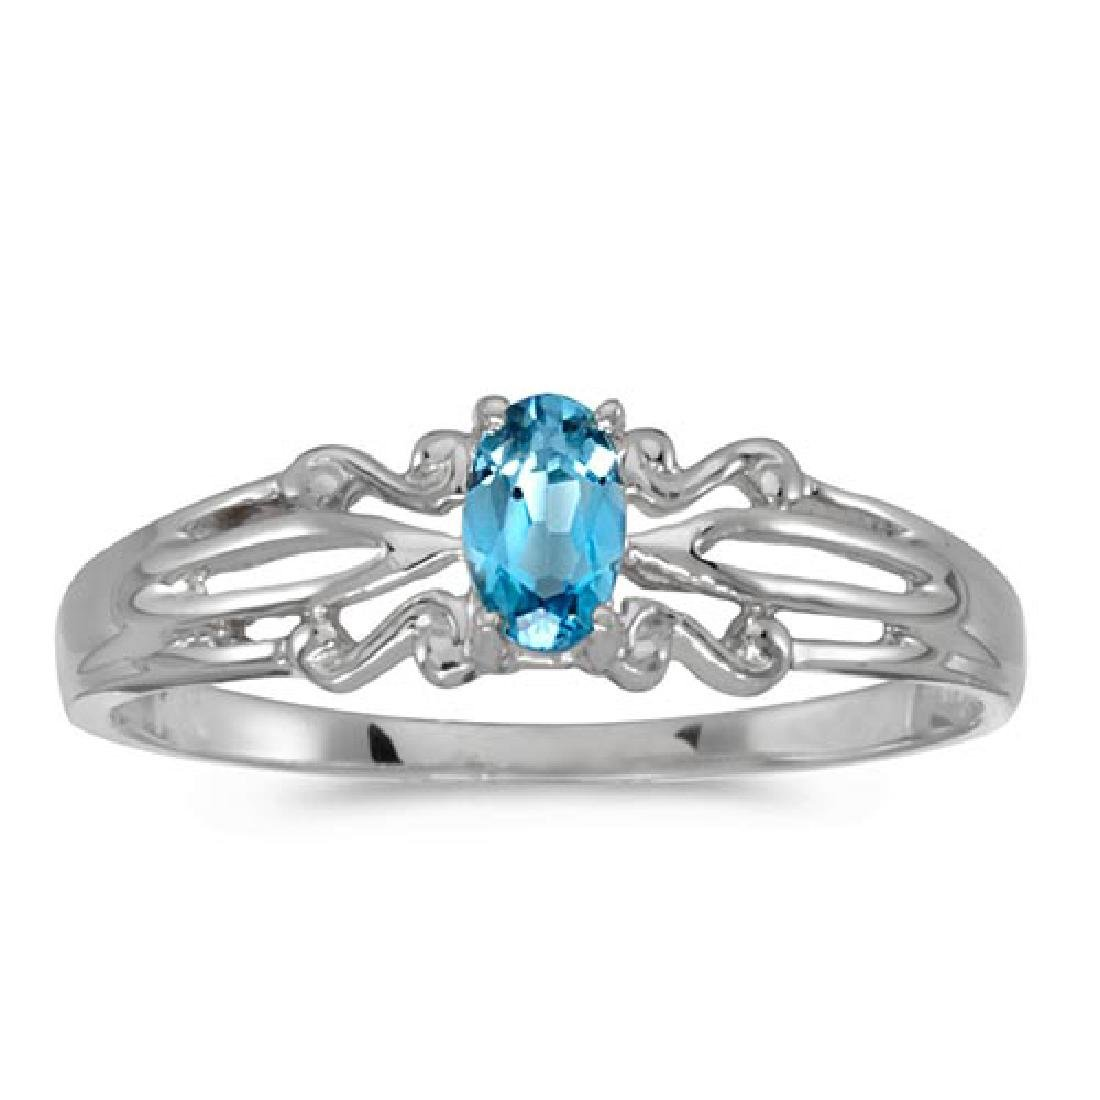 Certified 14k White Gold Oval Blue Topaz Ring 0.19 CTW